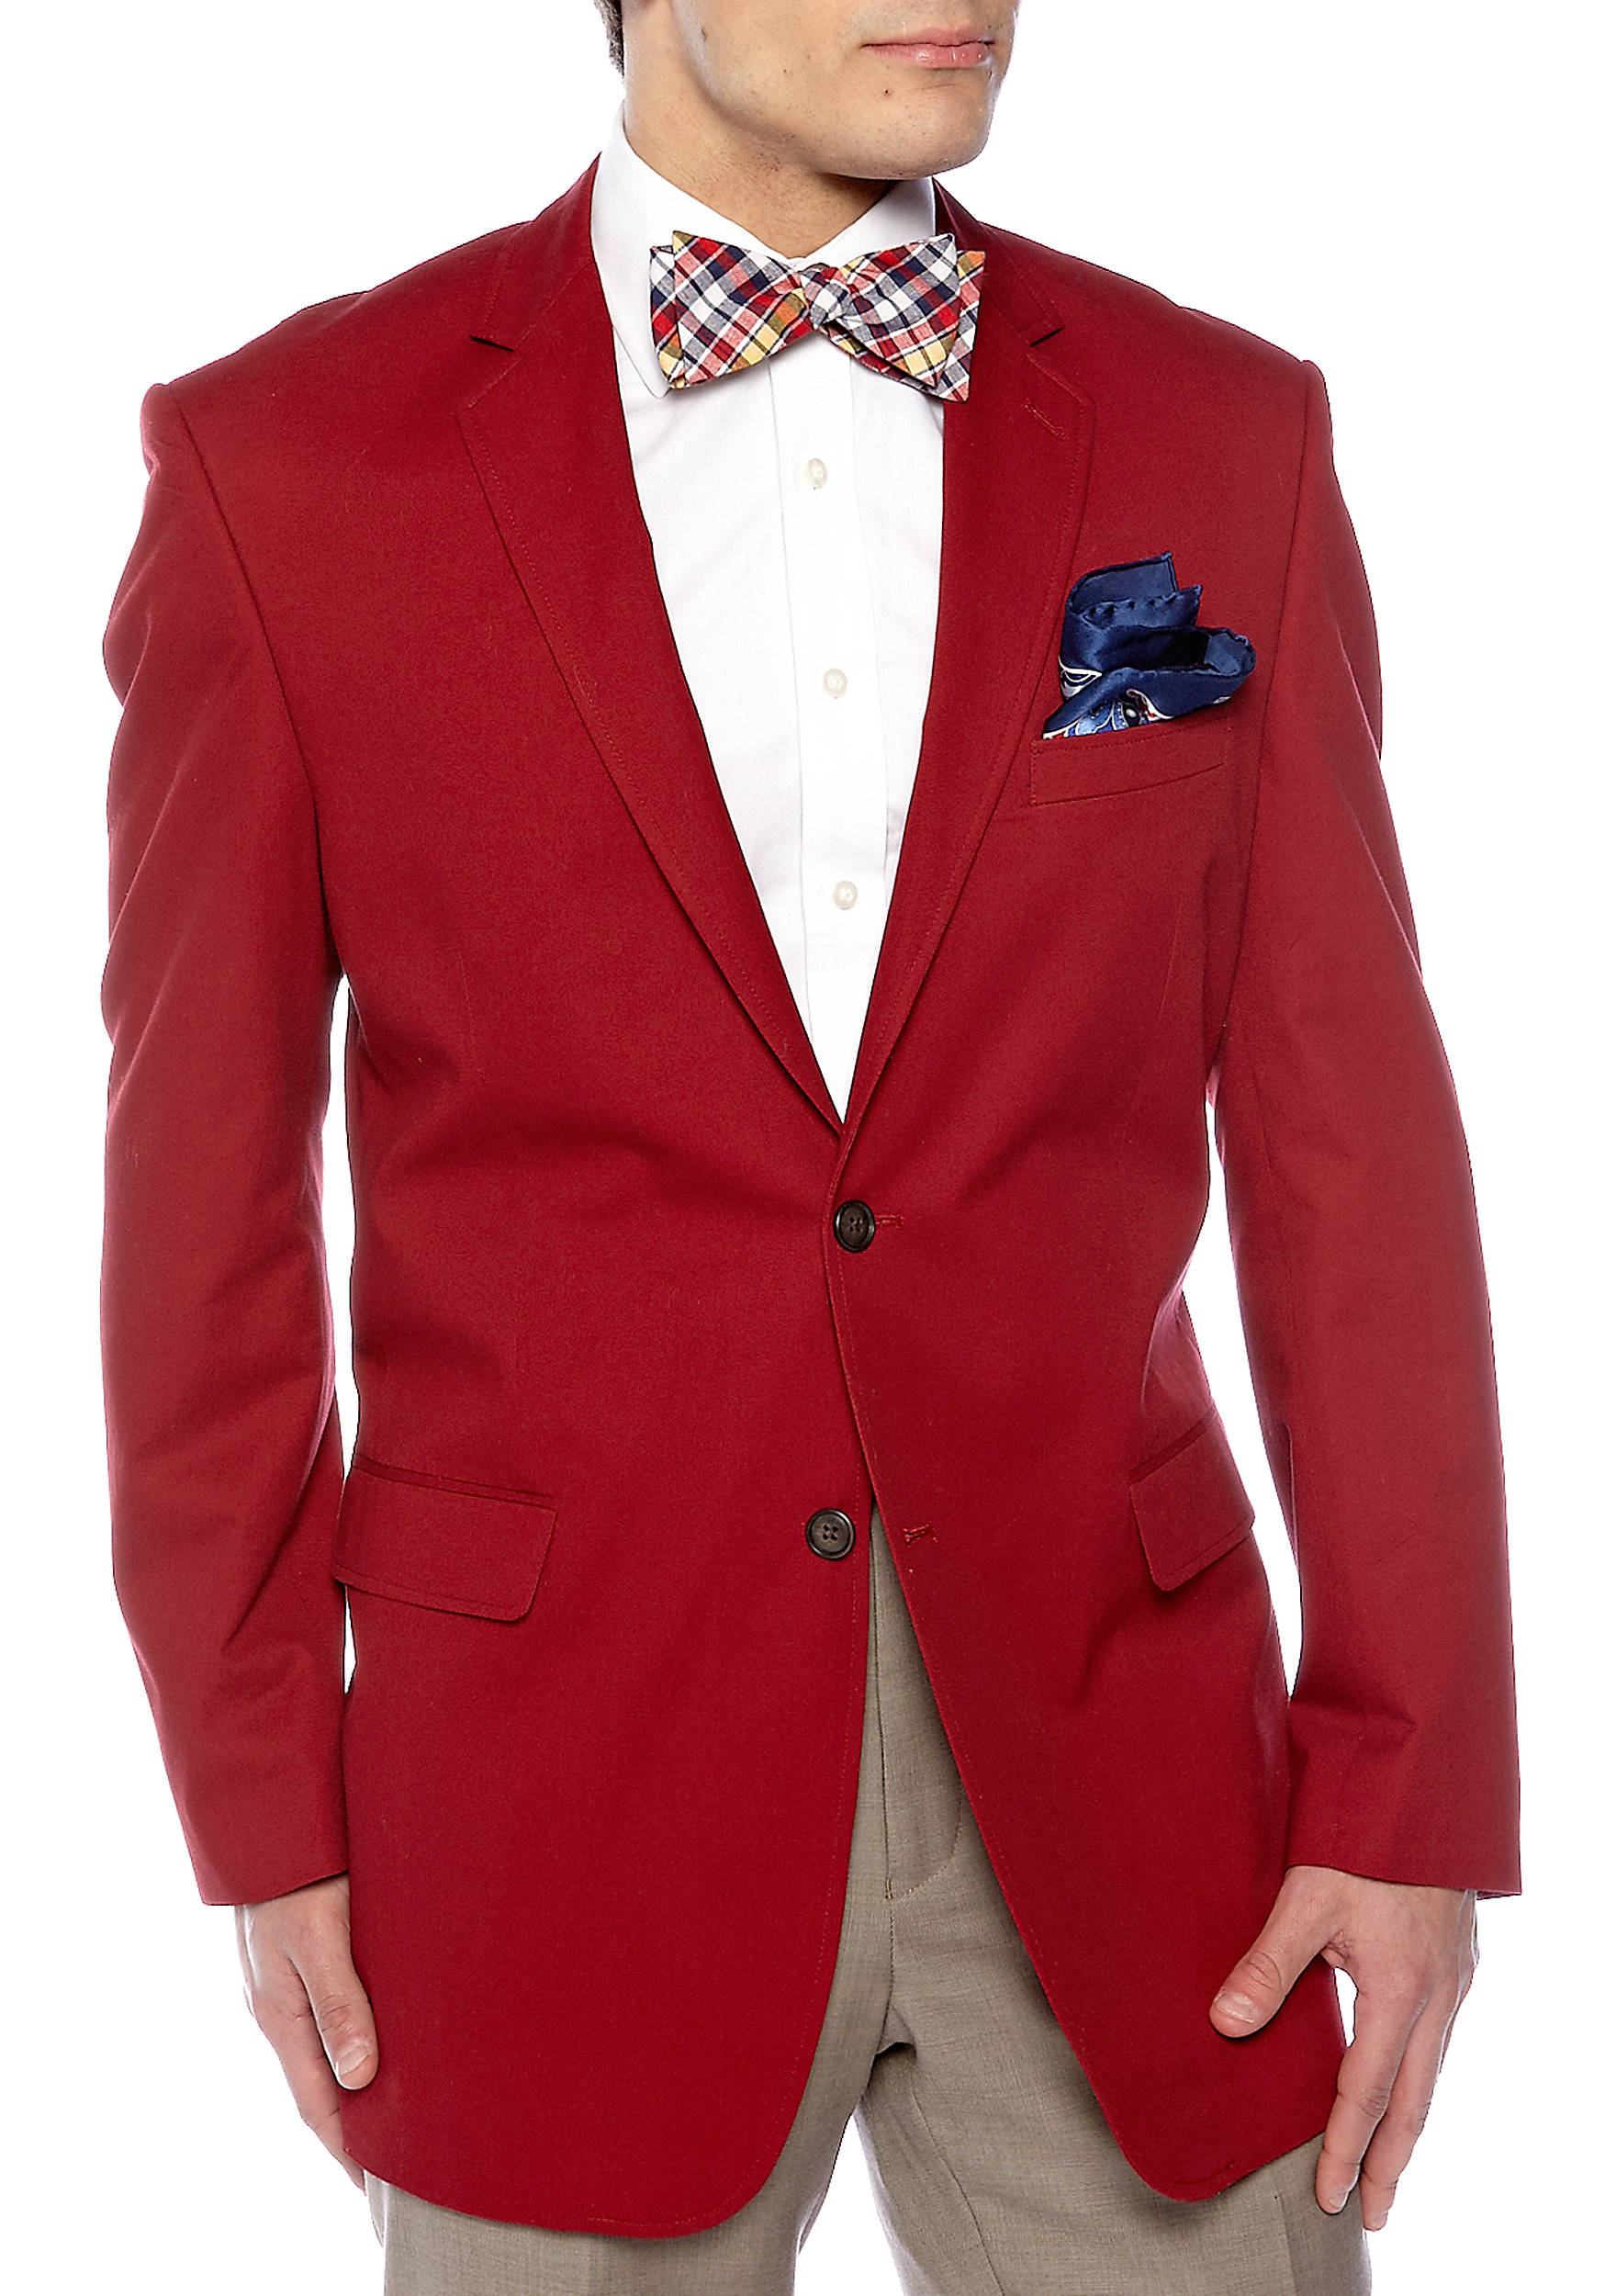 Saddlebred® Classic Fit Cotton Red Blazer | belk